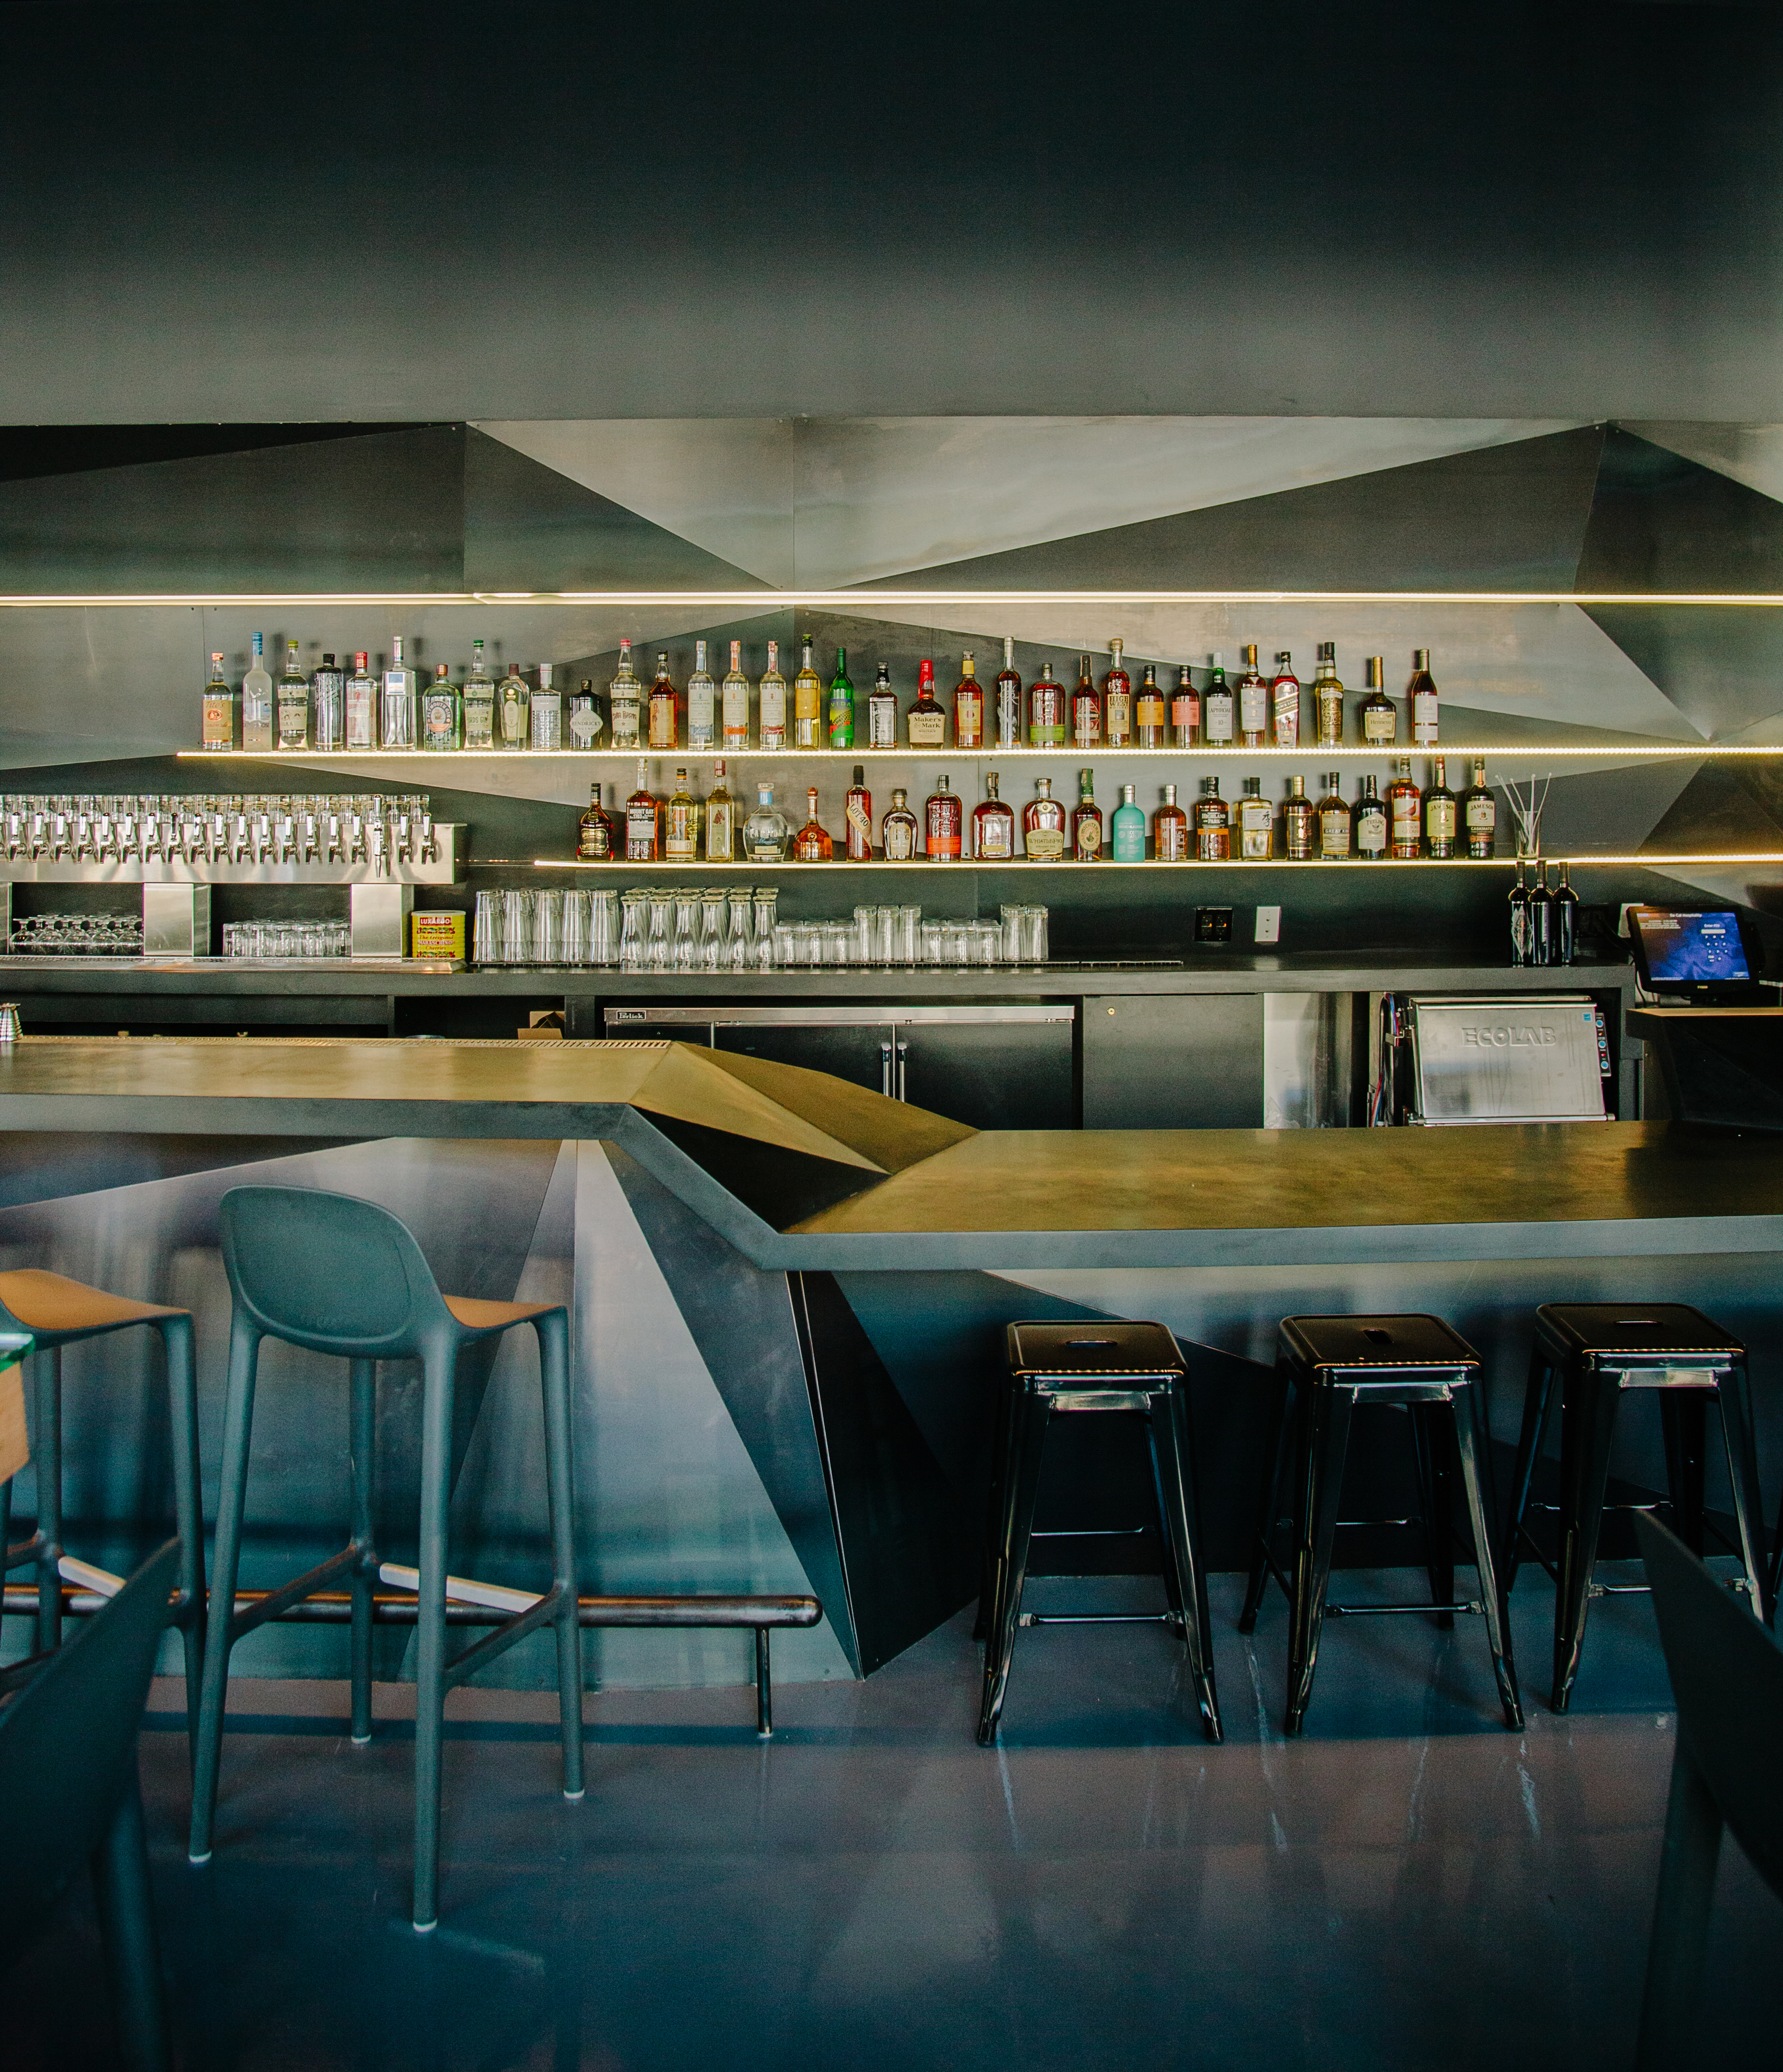 The Best Designed Restaurants In Los Angeles, As Judged By The AIA LA